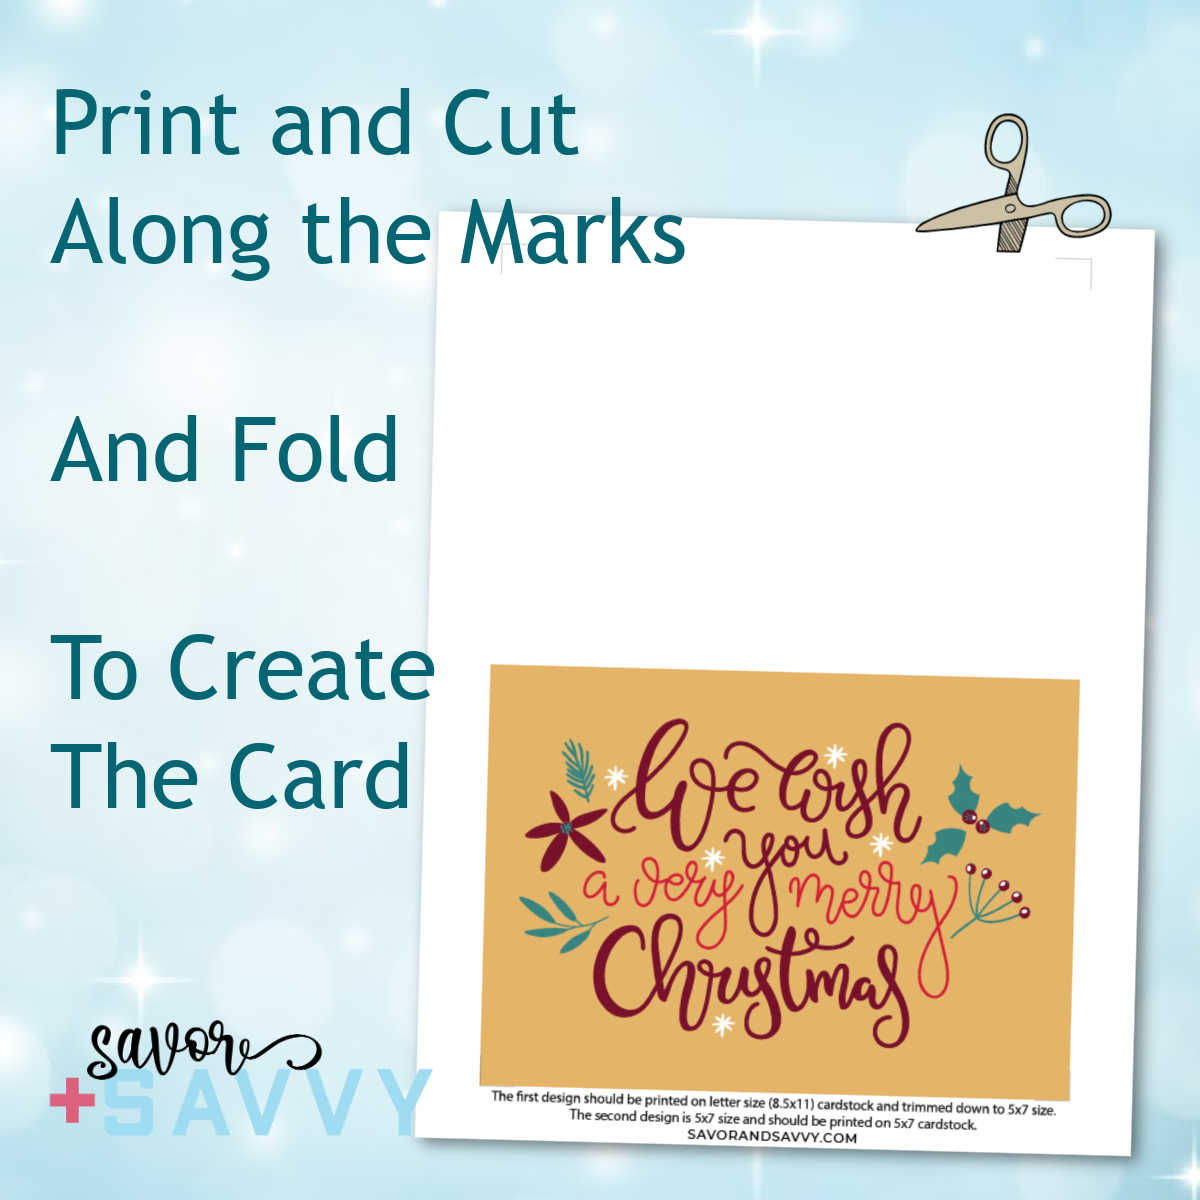 Whole page of the printable card and graphics to show how to print, cut and flod.